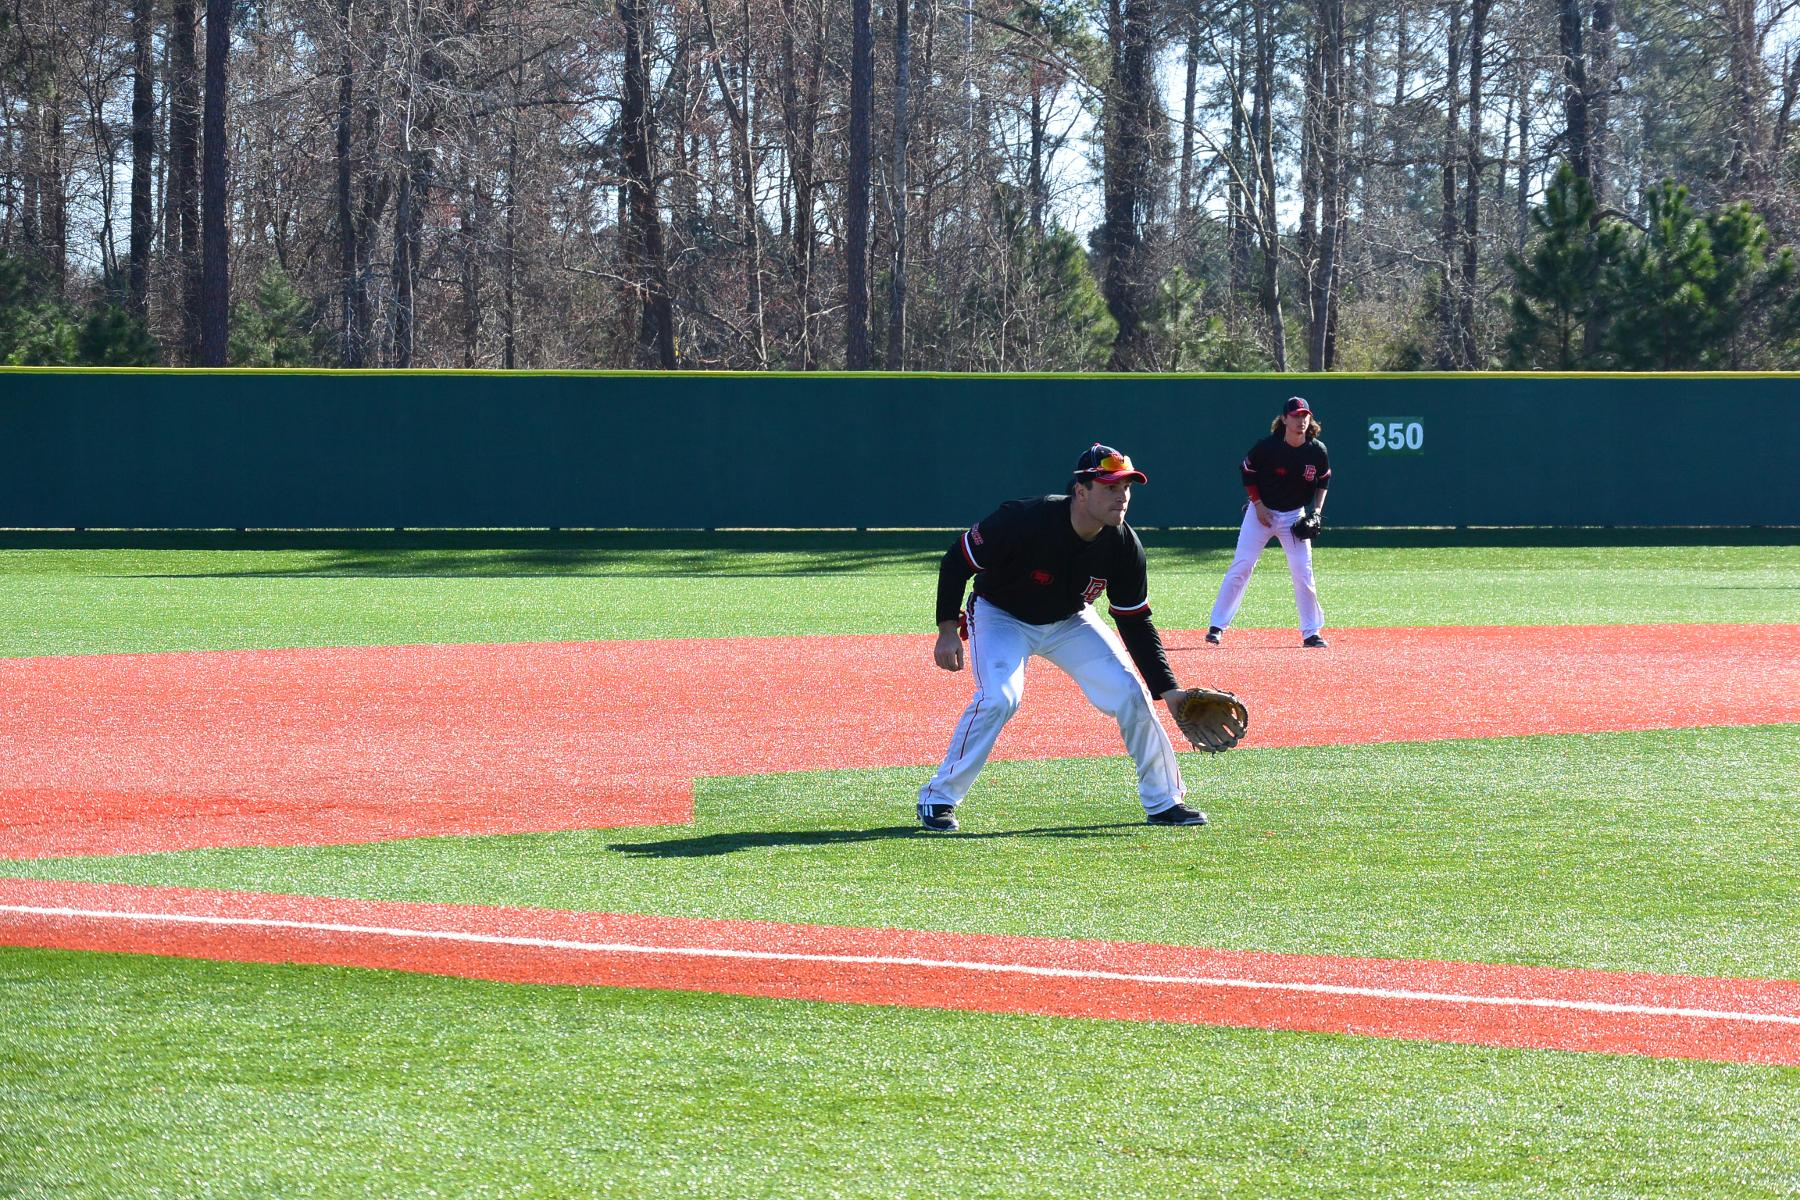 BASEBALL DROPS TWO TO SLIPPERY ROCK